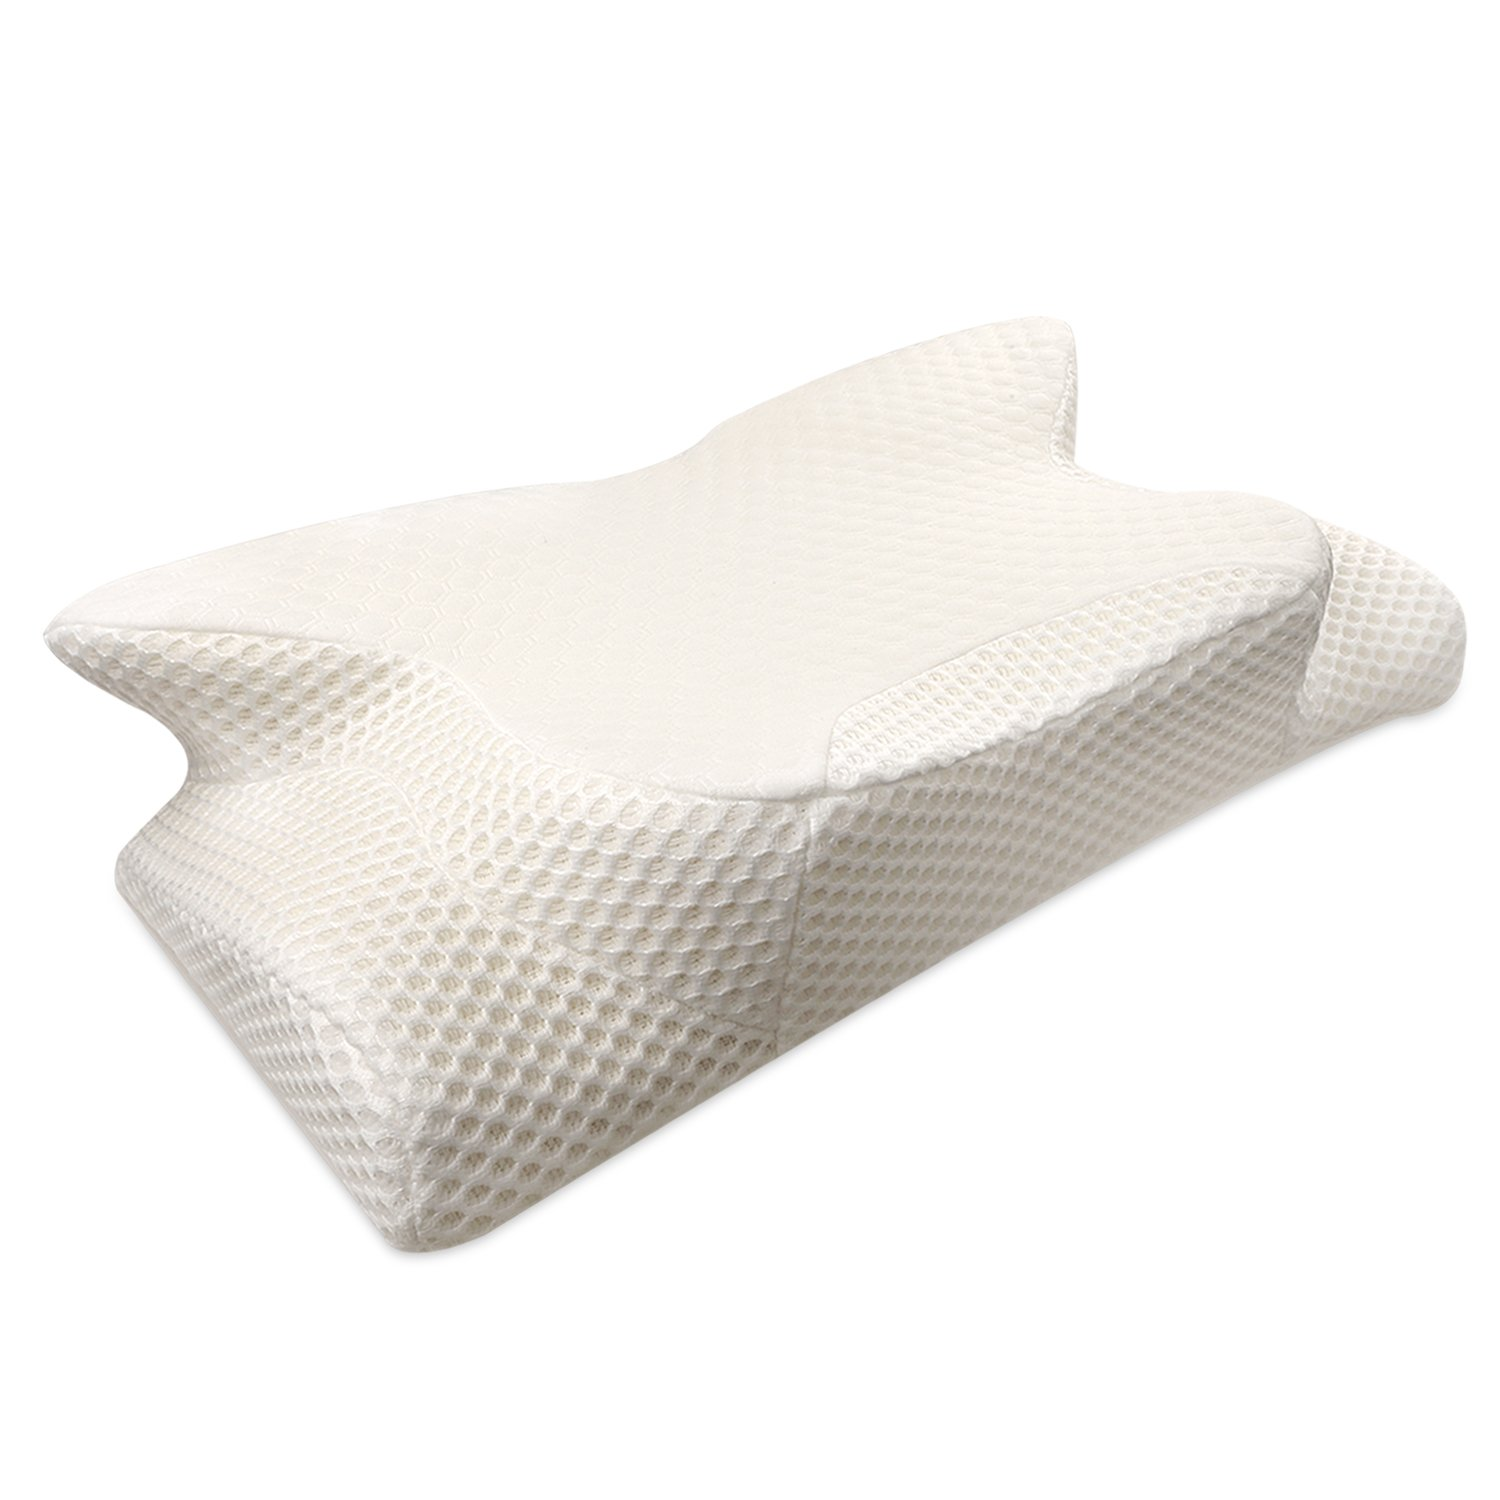 Maxchange Cervical Pillow, Memory Foam Contour Pillow for Neck and Shoulder Pain Relief, Neck Support Pillow for Back/Side Sleepers with Removable and Washable Pillow Case.